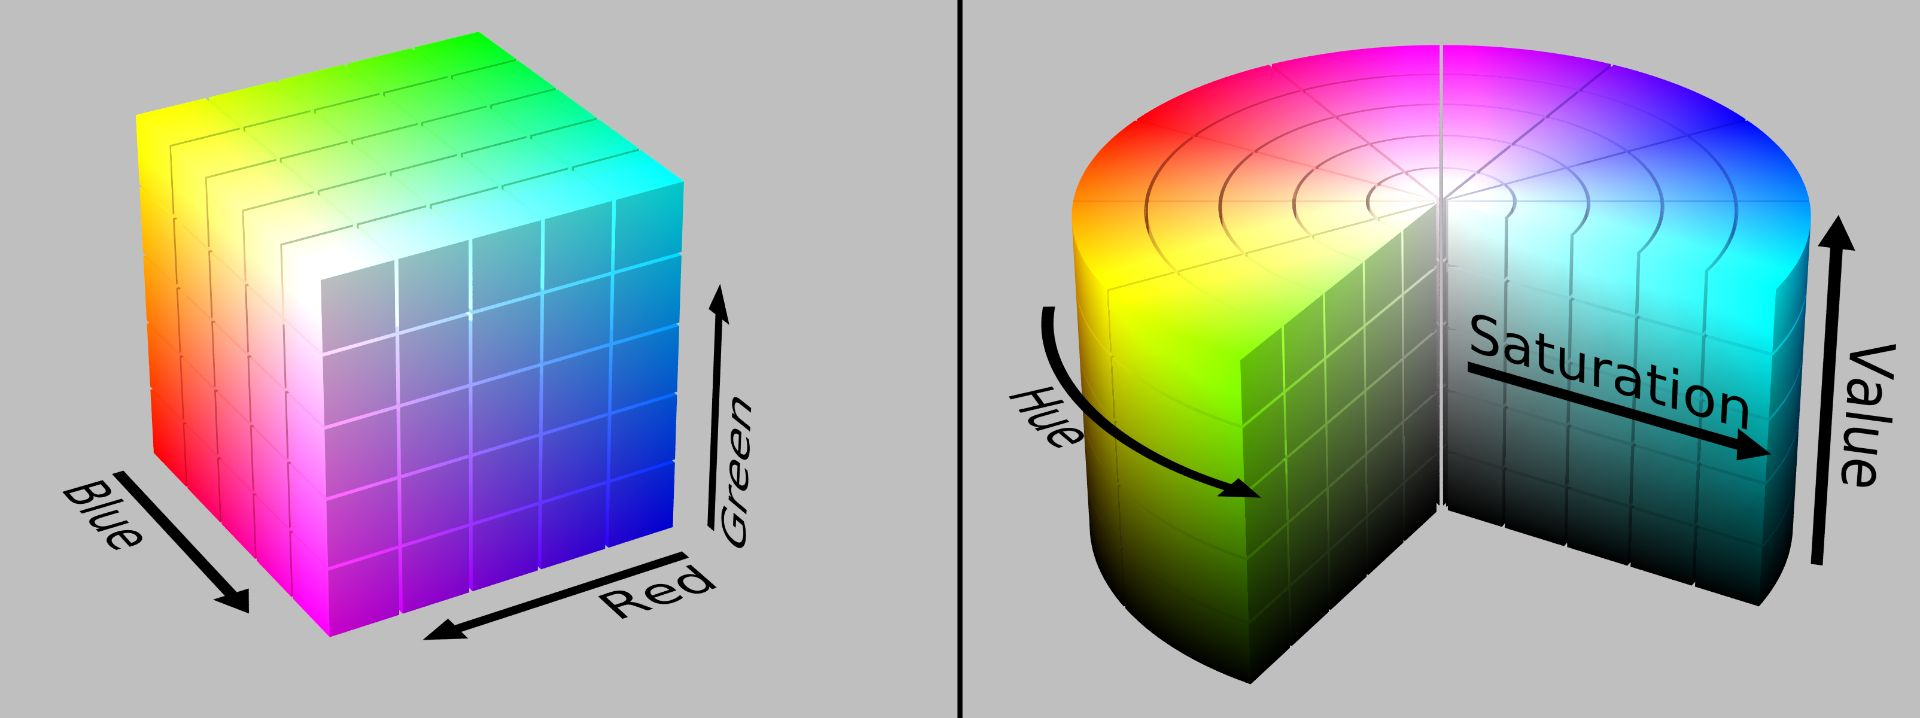 Diagram showing the RGB colorspace, represented as a cube, compared with the HSV colorspace, represented as a cylinder.